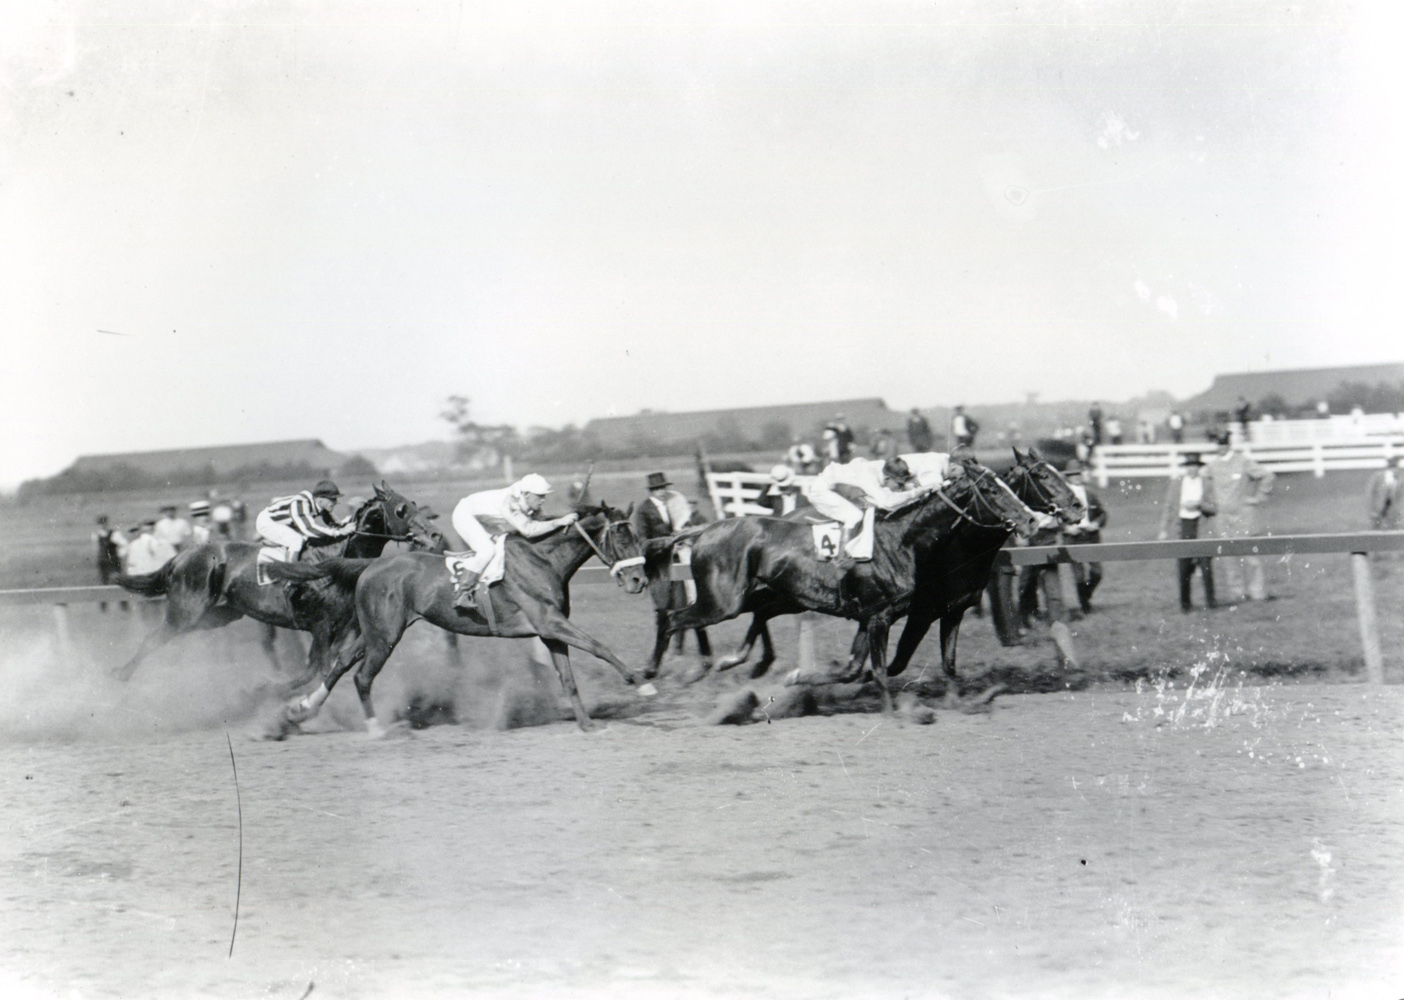 Willie Knapp and Borrow winning the 1917 Brooklyn Handicap at Aqueduct (Keeneland Library Cook Collection/Museum Collection)